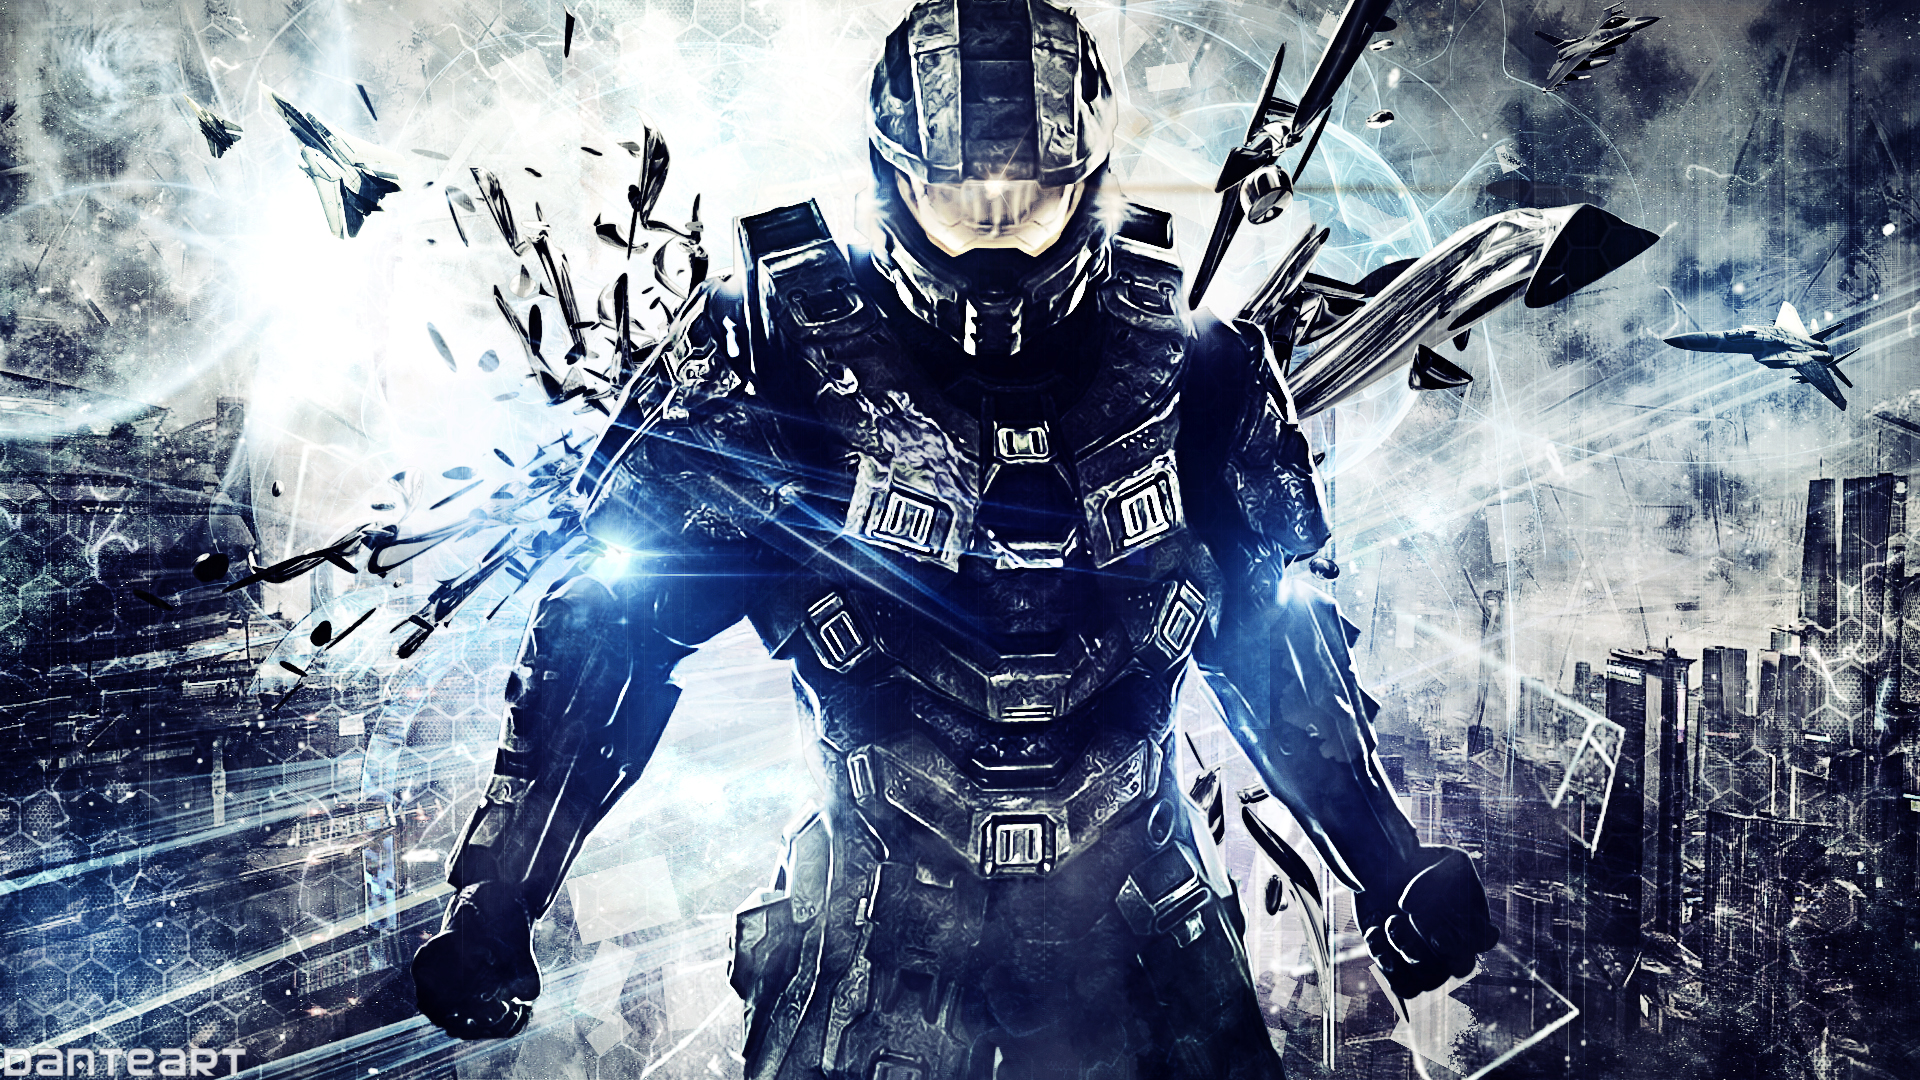 Cool halo wallpapers wallpapersafari - Halo 4 pictures ...